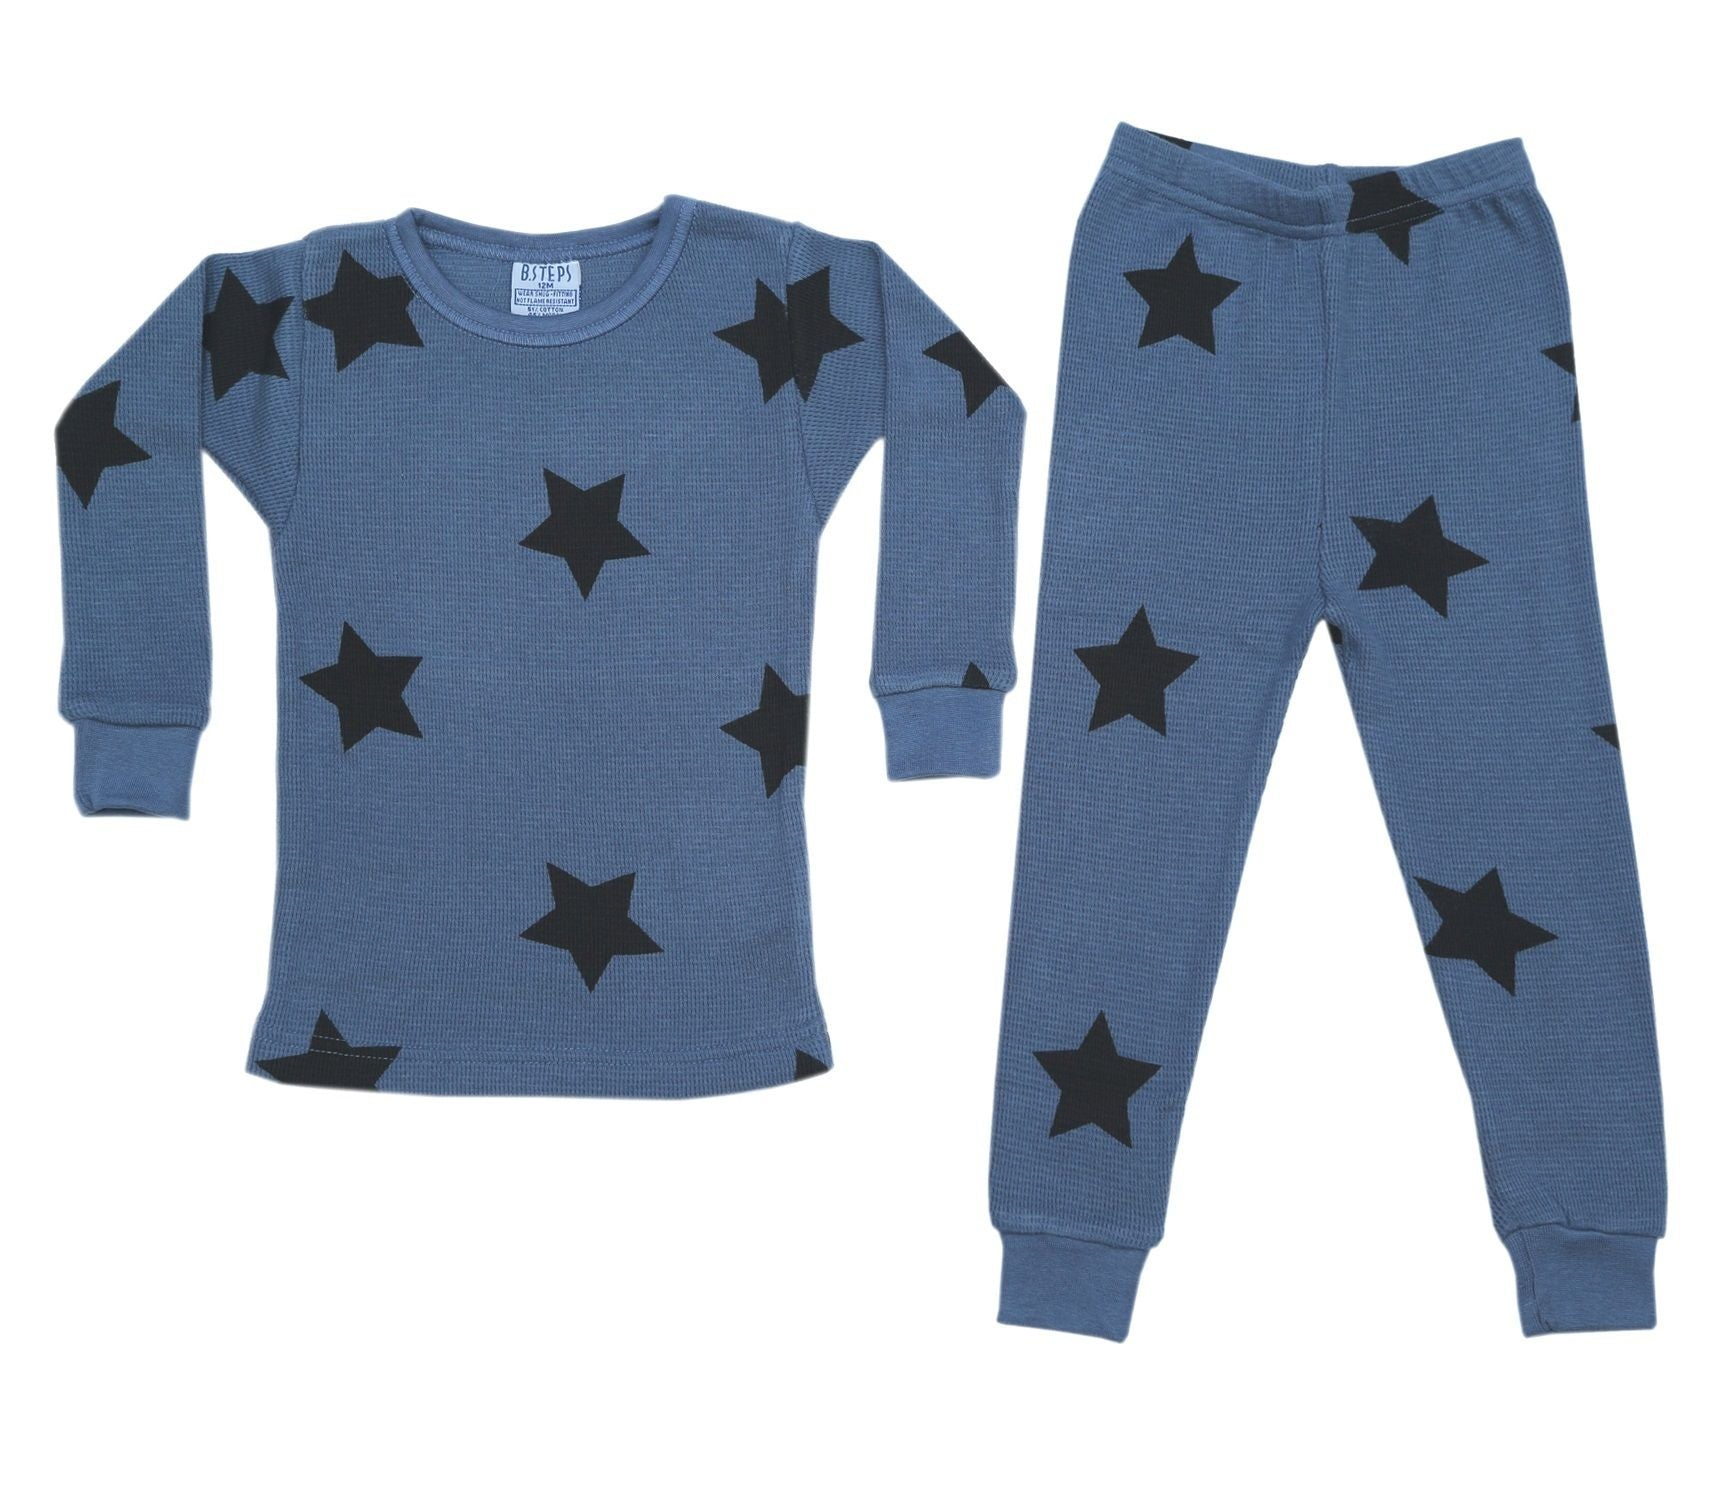 NEW! Thermal Star Pajamas - Black Stars on Denim (4686772863051)